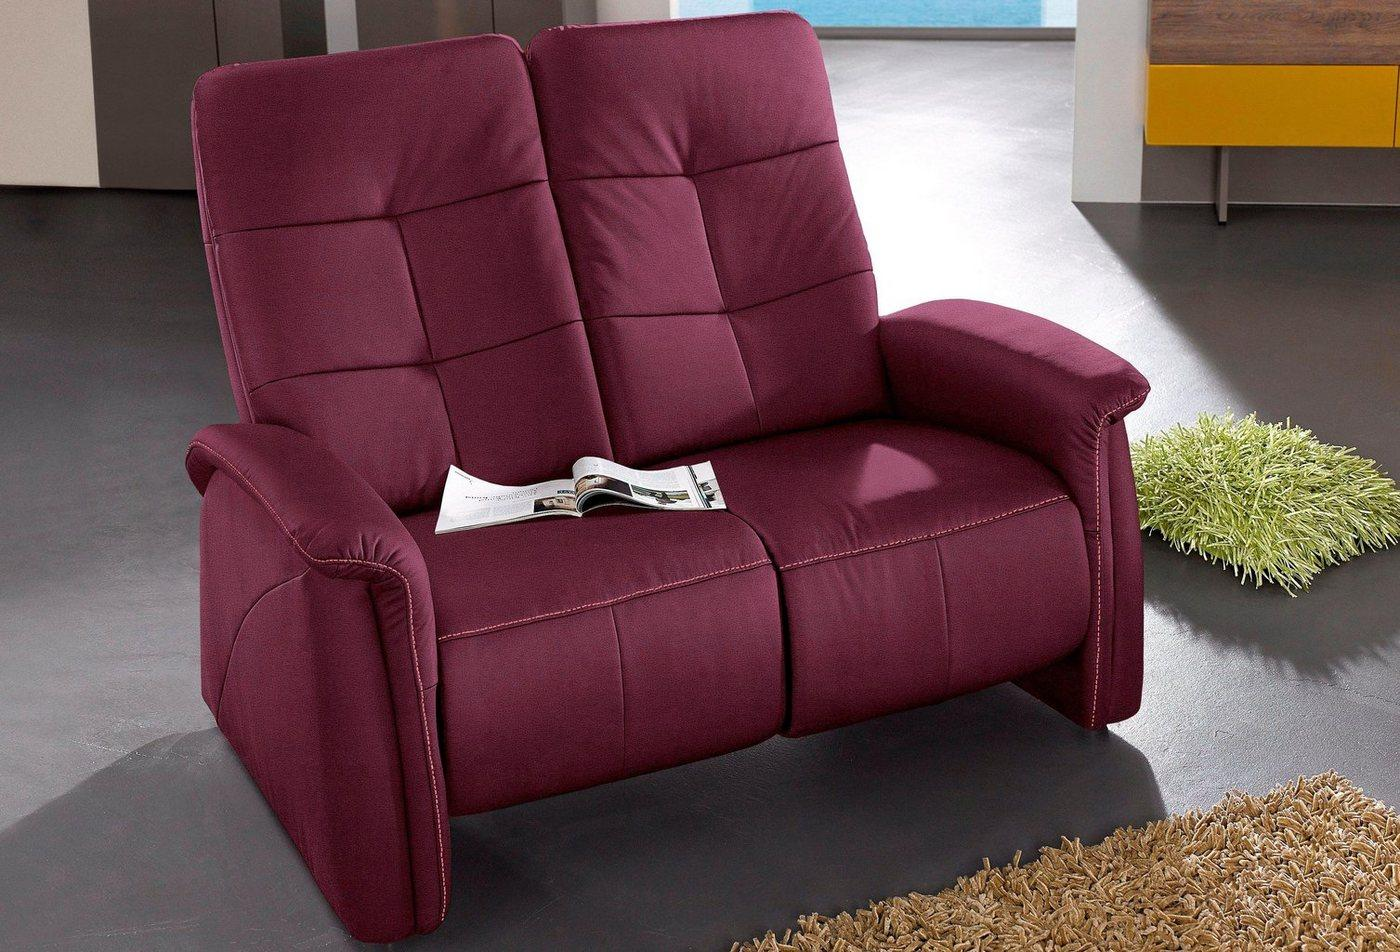 2 Sitzer Couch Mit Relaxfunktion